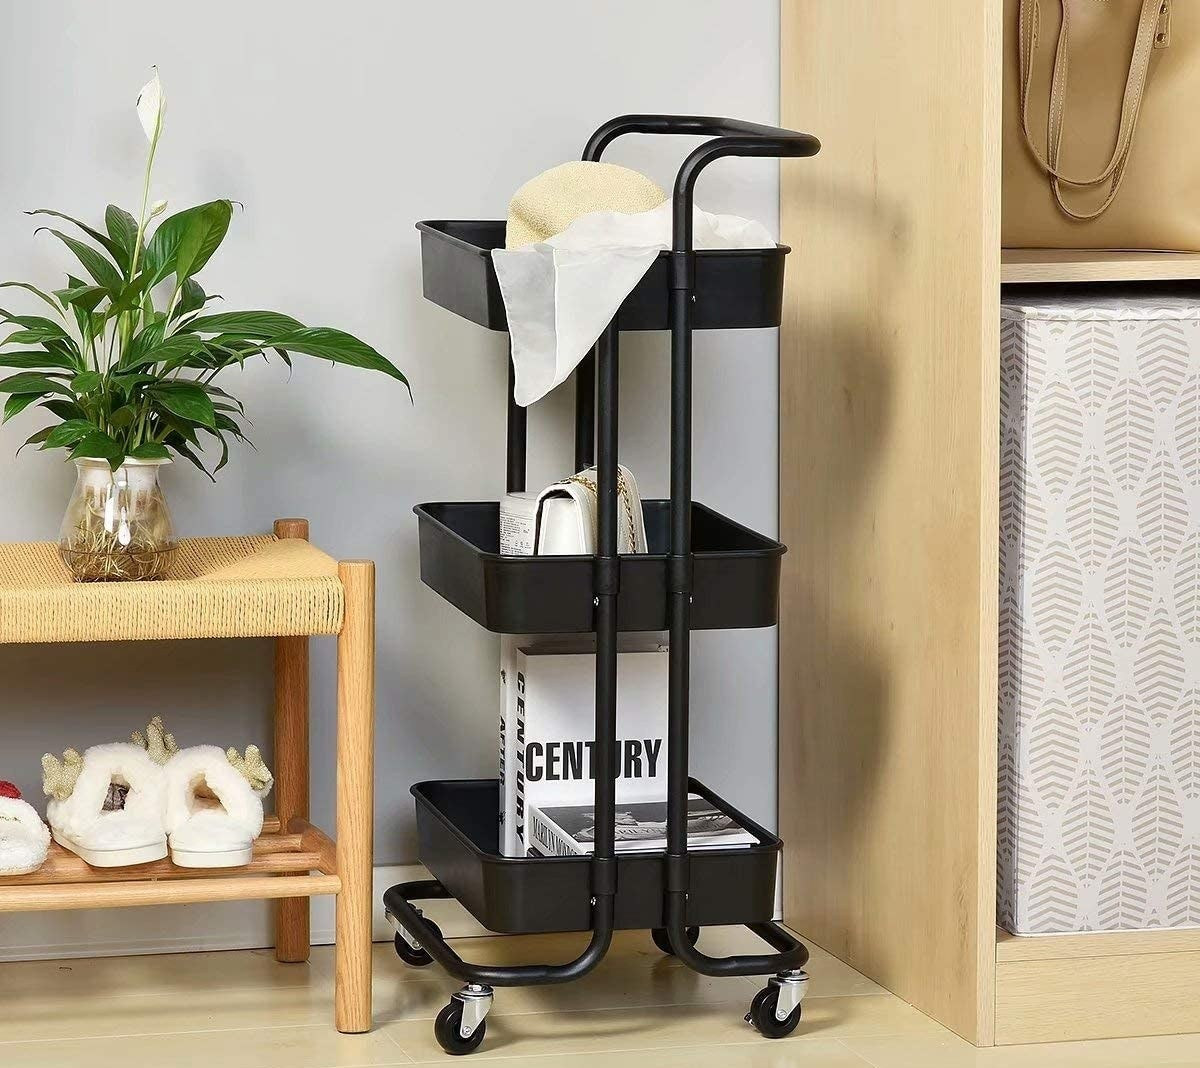 The utility cart beside a shoe bench and a shelf